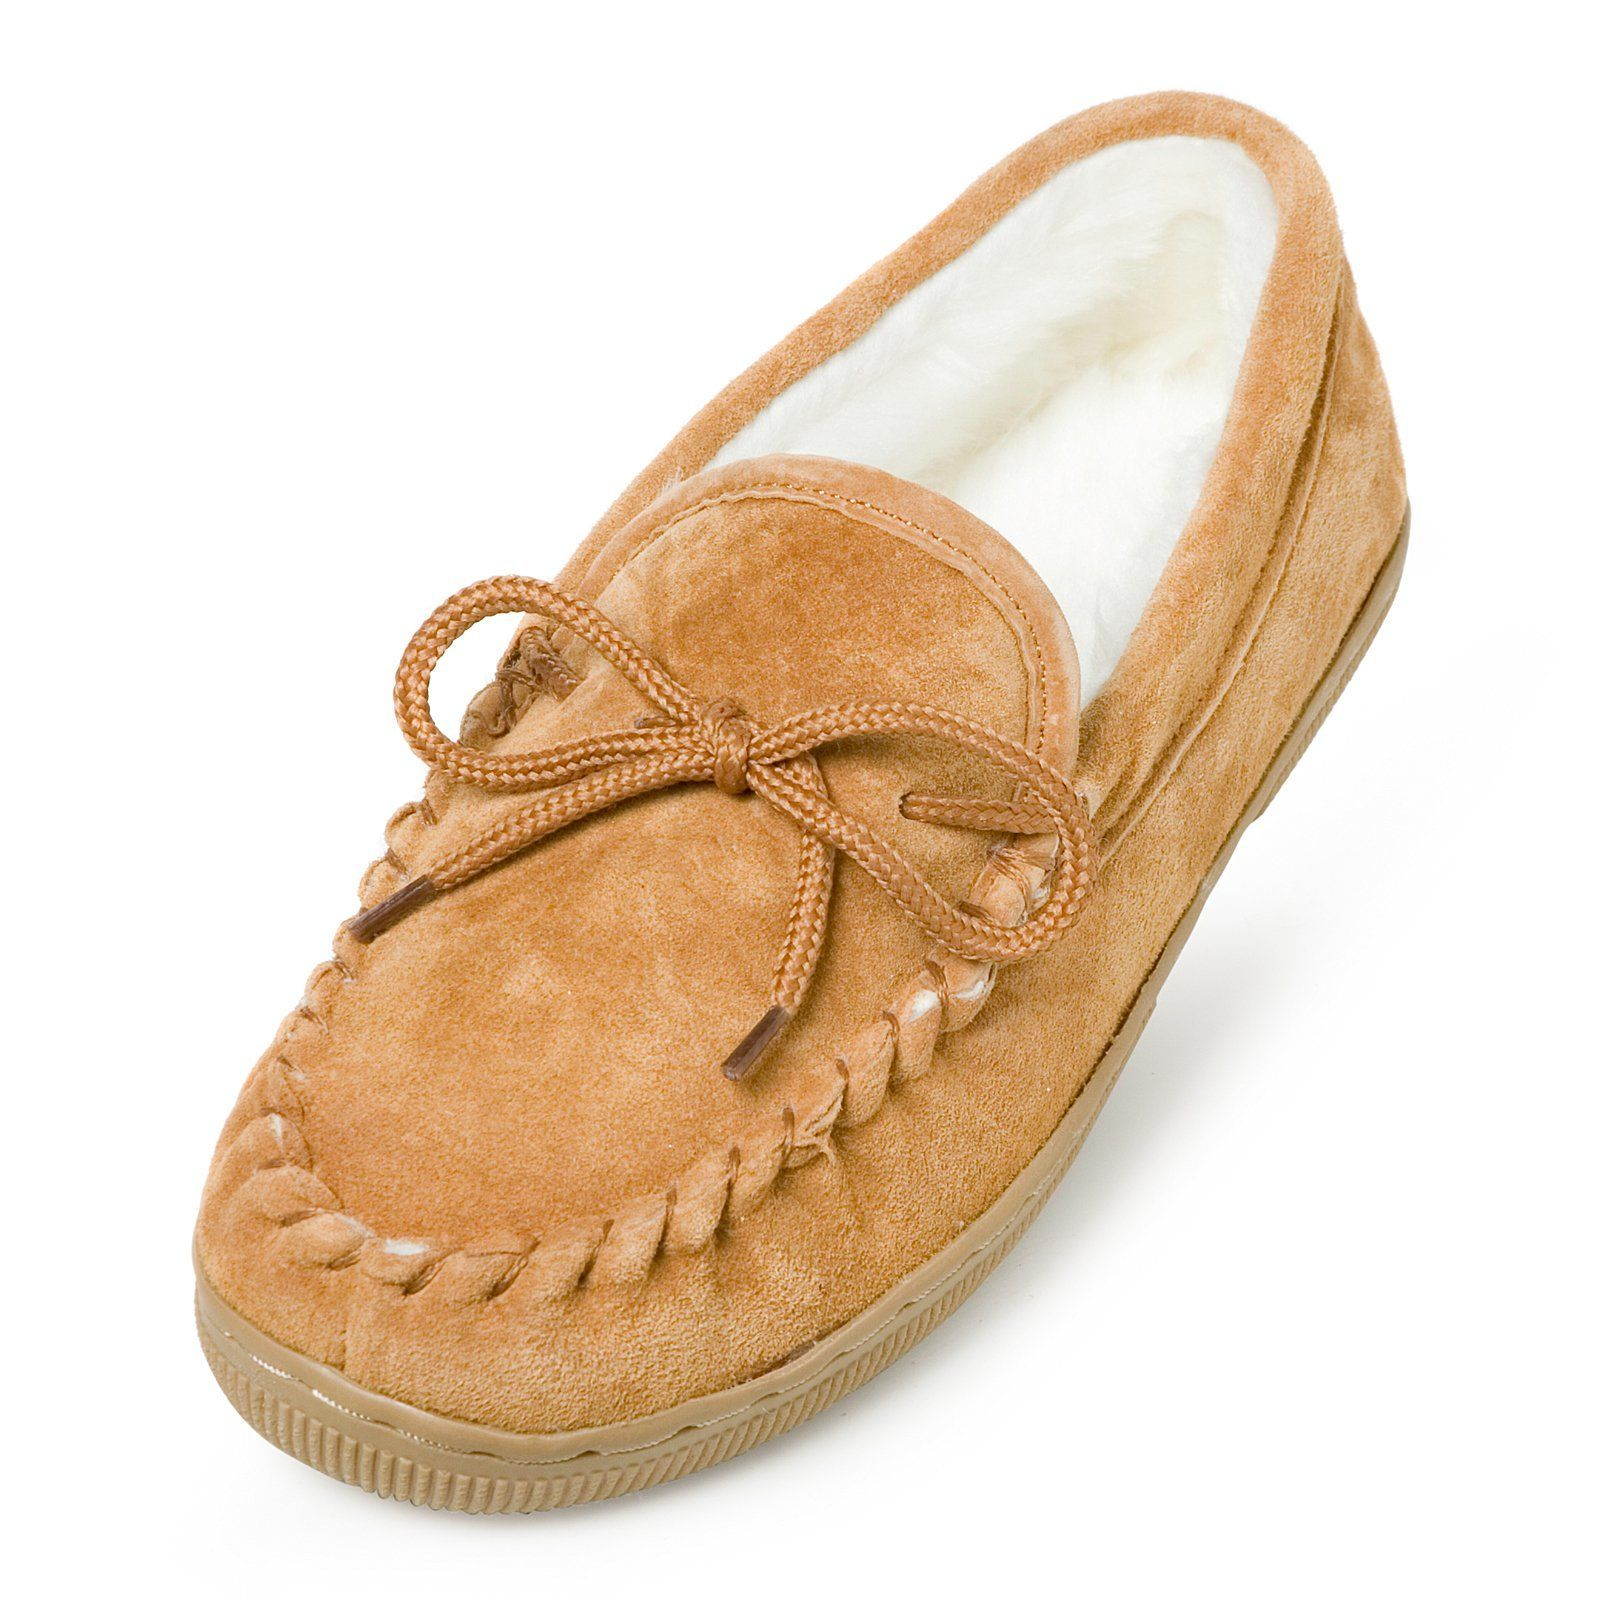 4e2b92bfe45fbb Lamo Womens Suede Moccasin Slippers - Chestnut - P002W-6 CHESTNUT ...